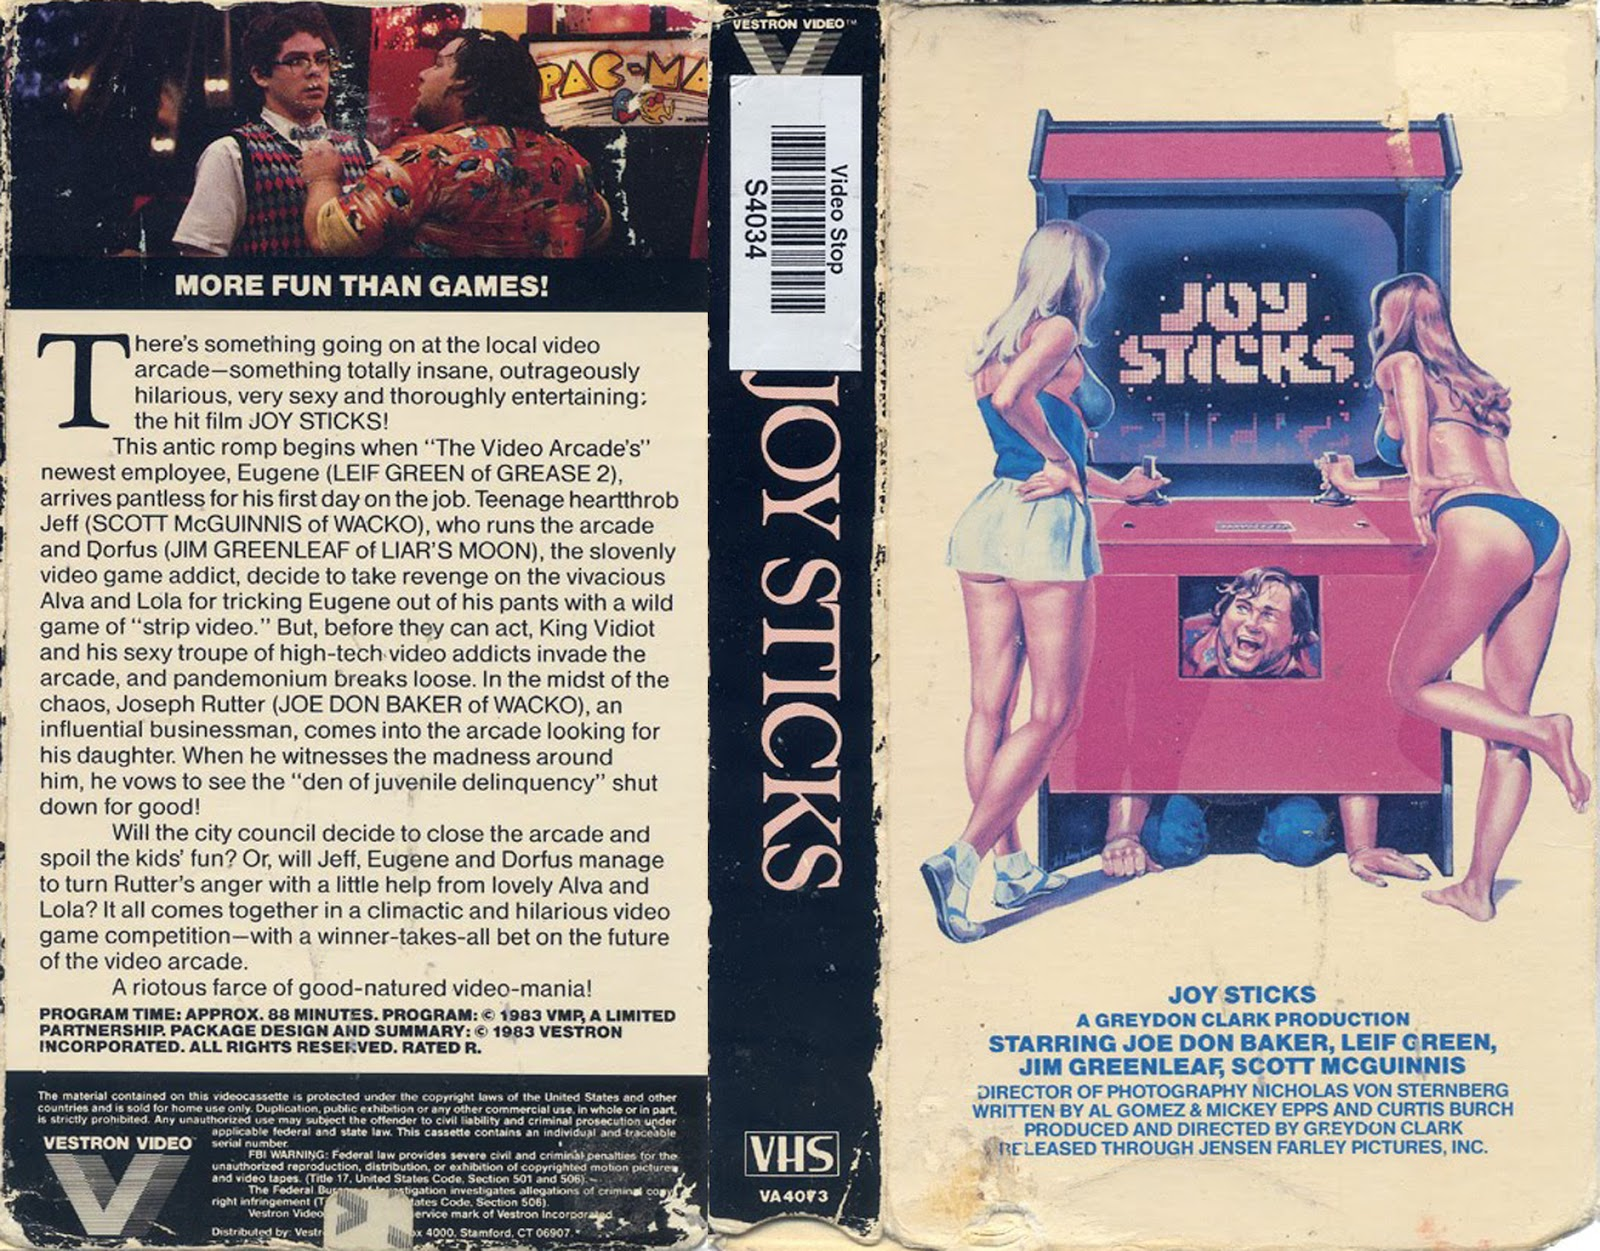 Joysticks (1983) Comedy - R : When a top local businessman and his two bumbling nephews try to shut down the town's only video arcade, arcade employees and patrons fight back.